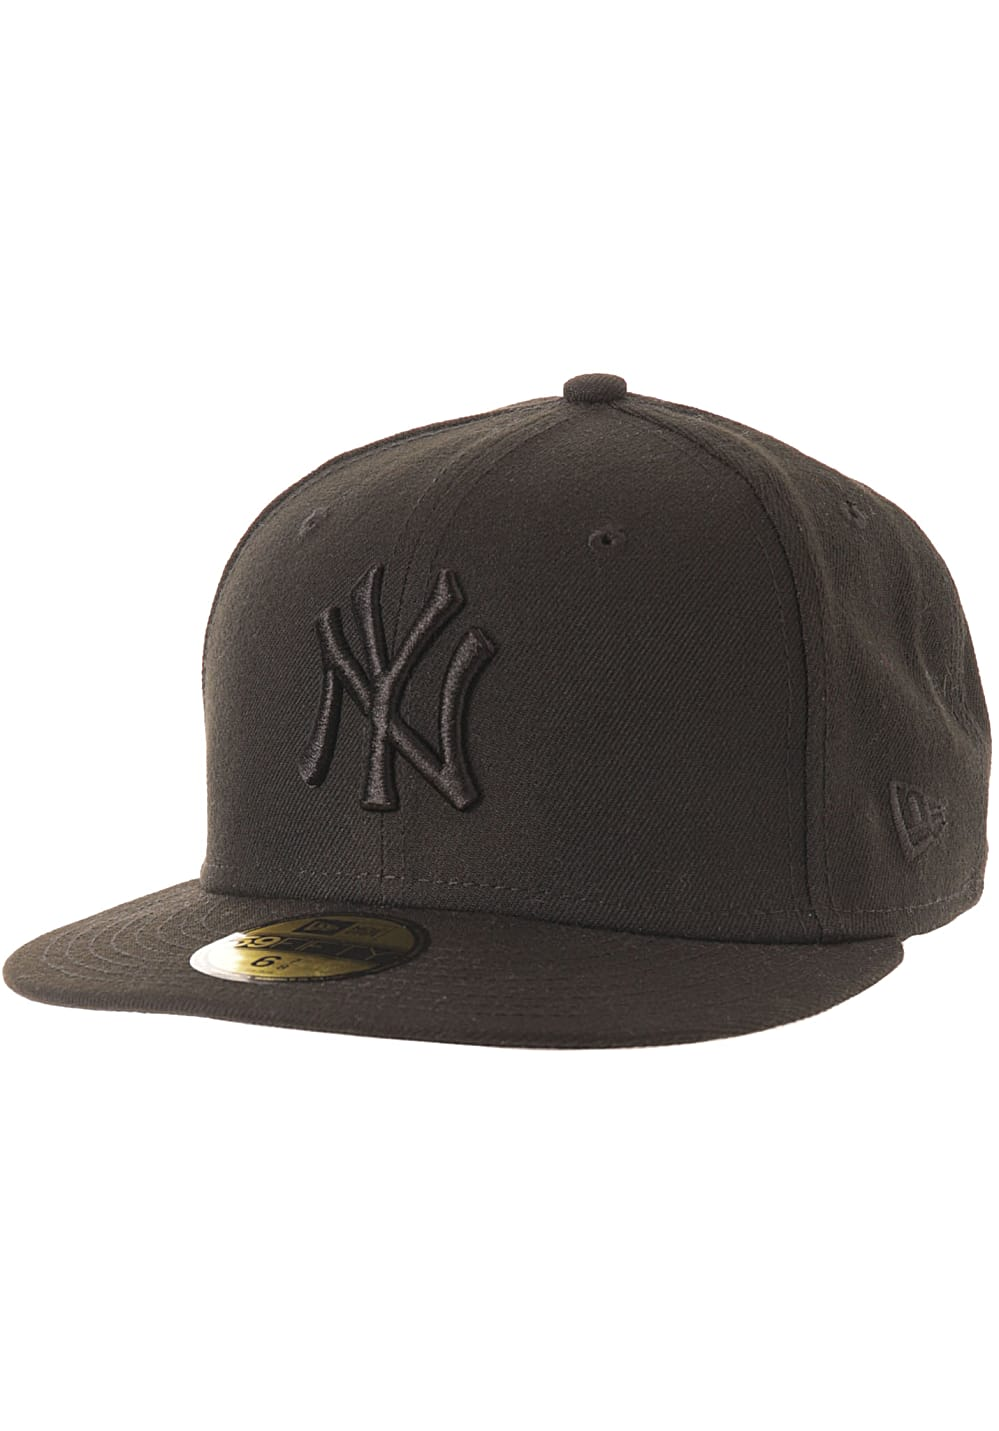 NEW Era 59Fifty New York Yankees Fitted Cap - Schwarz   Accessoires > Caps > Fitted Caps   new era